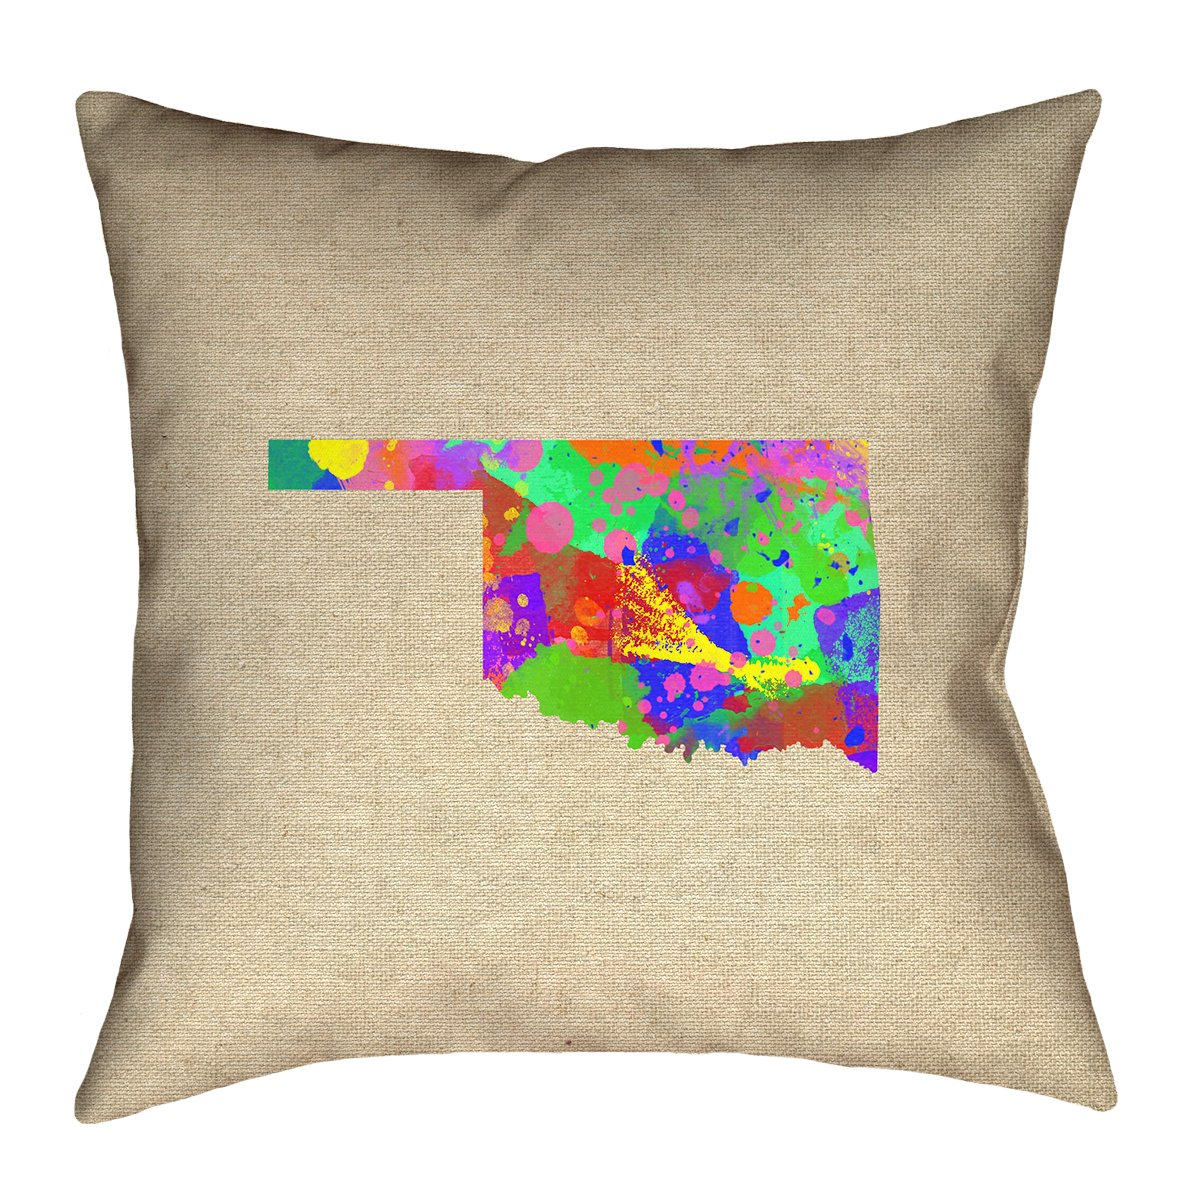 ArtVerse Katelyn Smith 26' x 26' Spun Polyester Double Sided Print with Concealed Zipper & Insert Oklahoma Watercolor Pillow